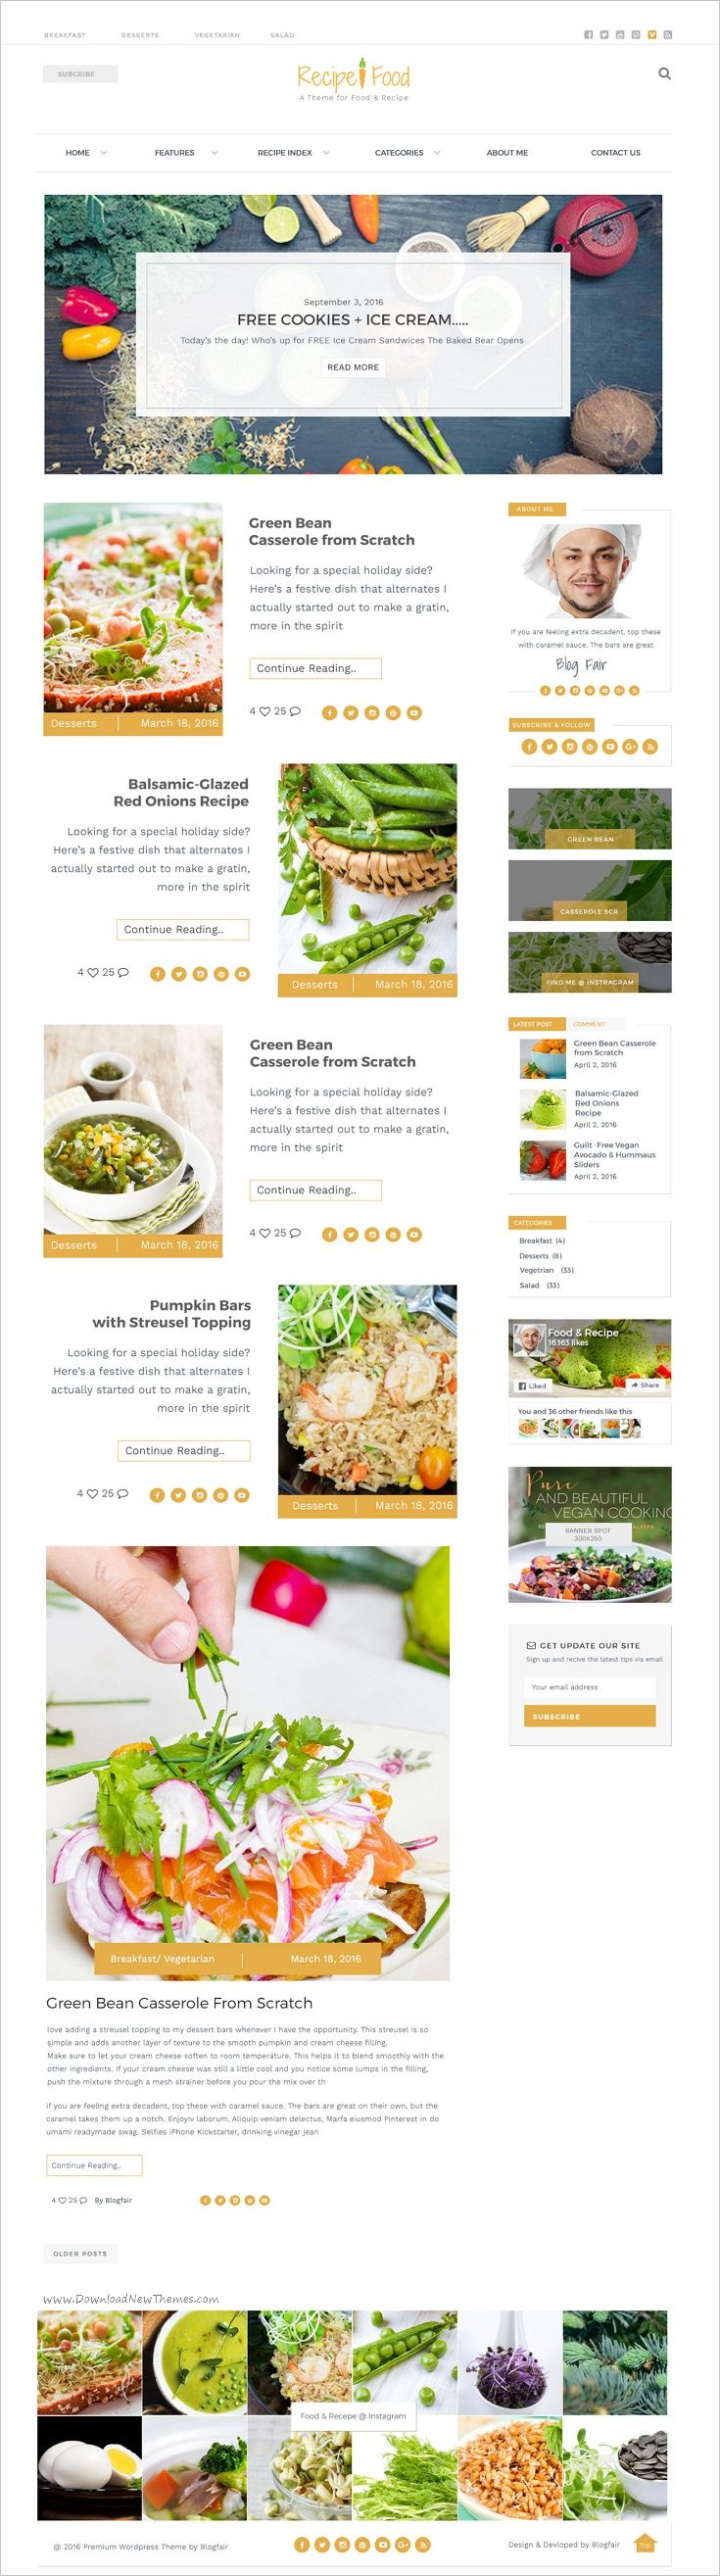 Food & Recipes is a feature rich and beautifully designed #PSD theme for #food and #recipes related #websites download now➩ https://themeforest.net/item/food-recipe-psd-template/18707860?ref=Datasata